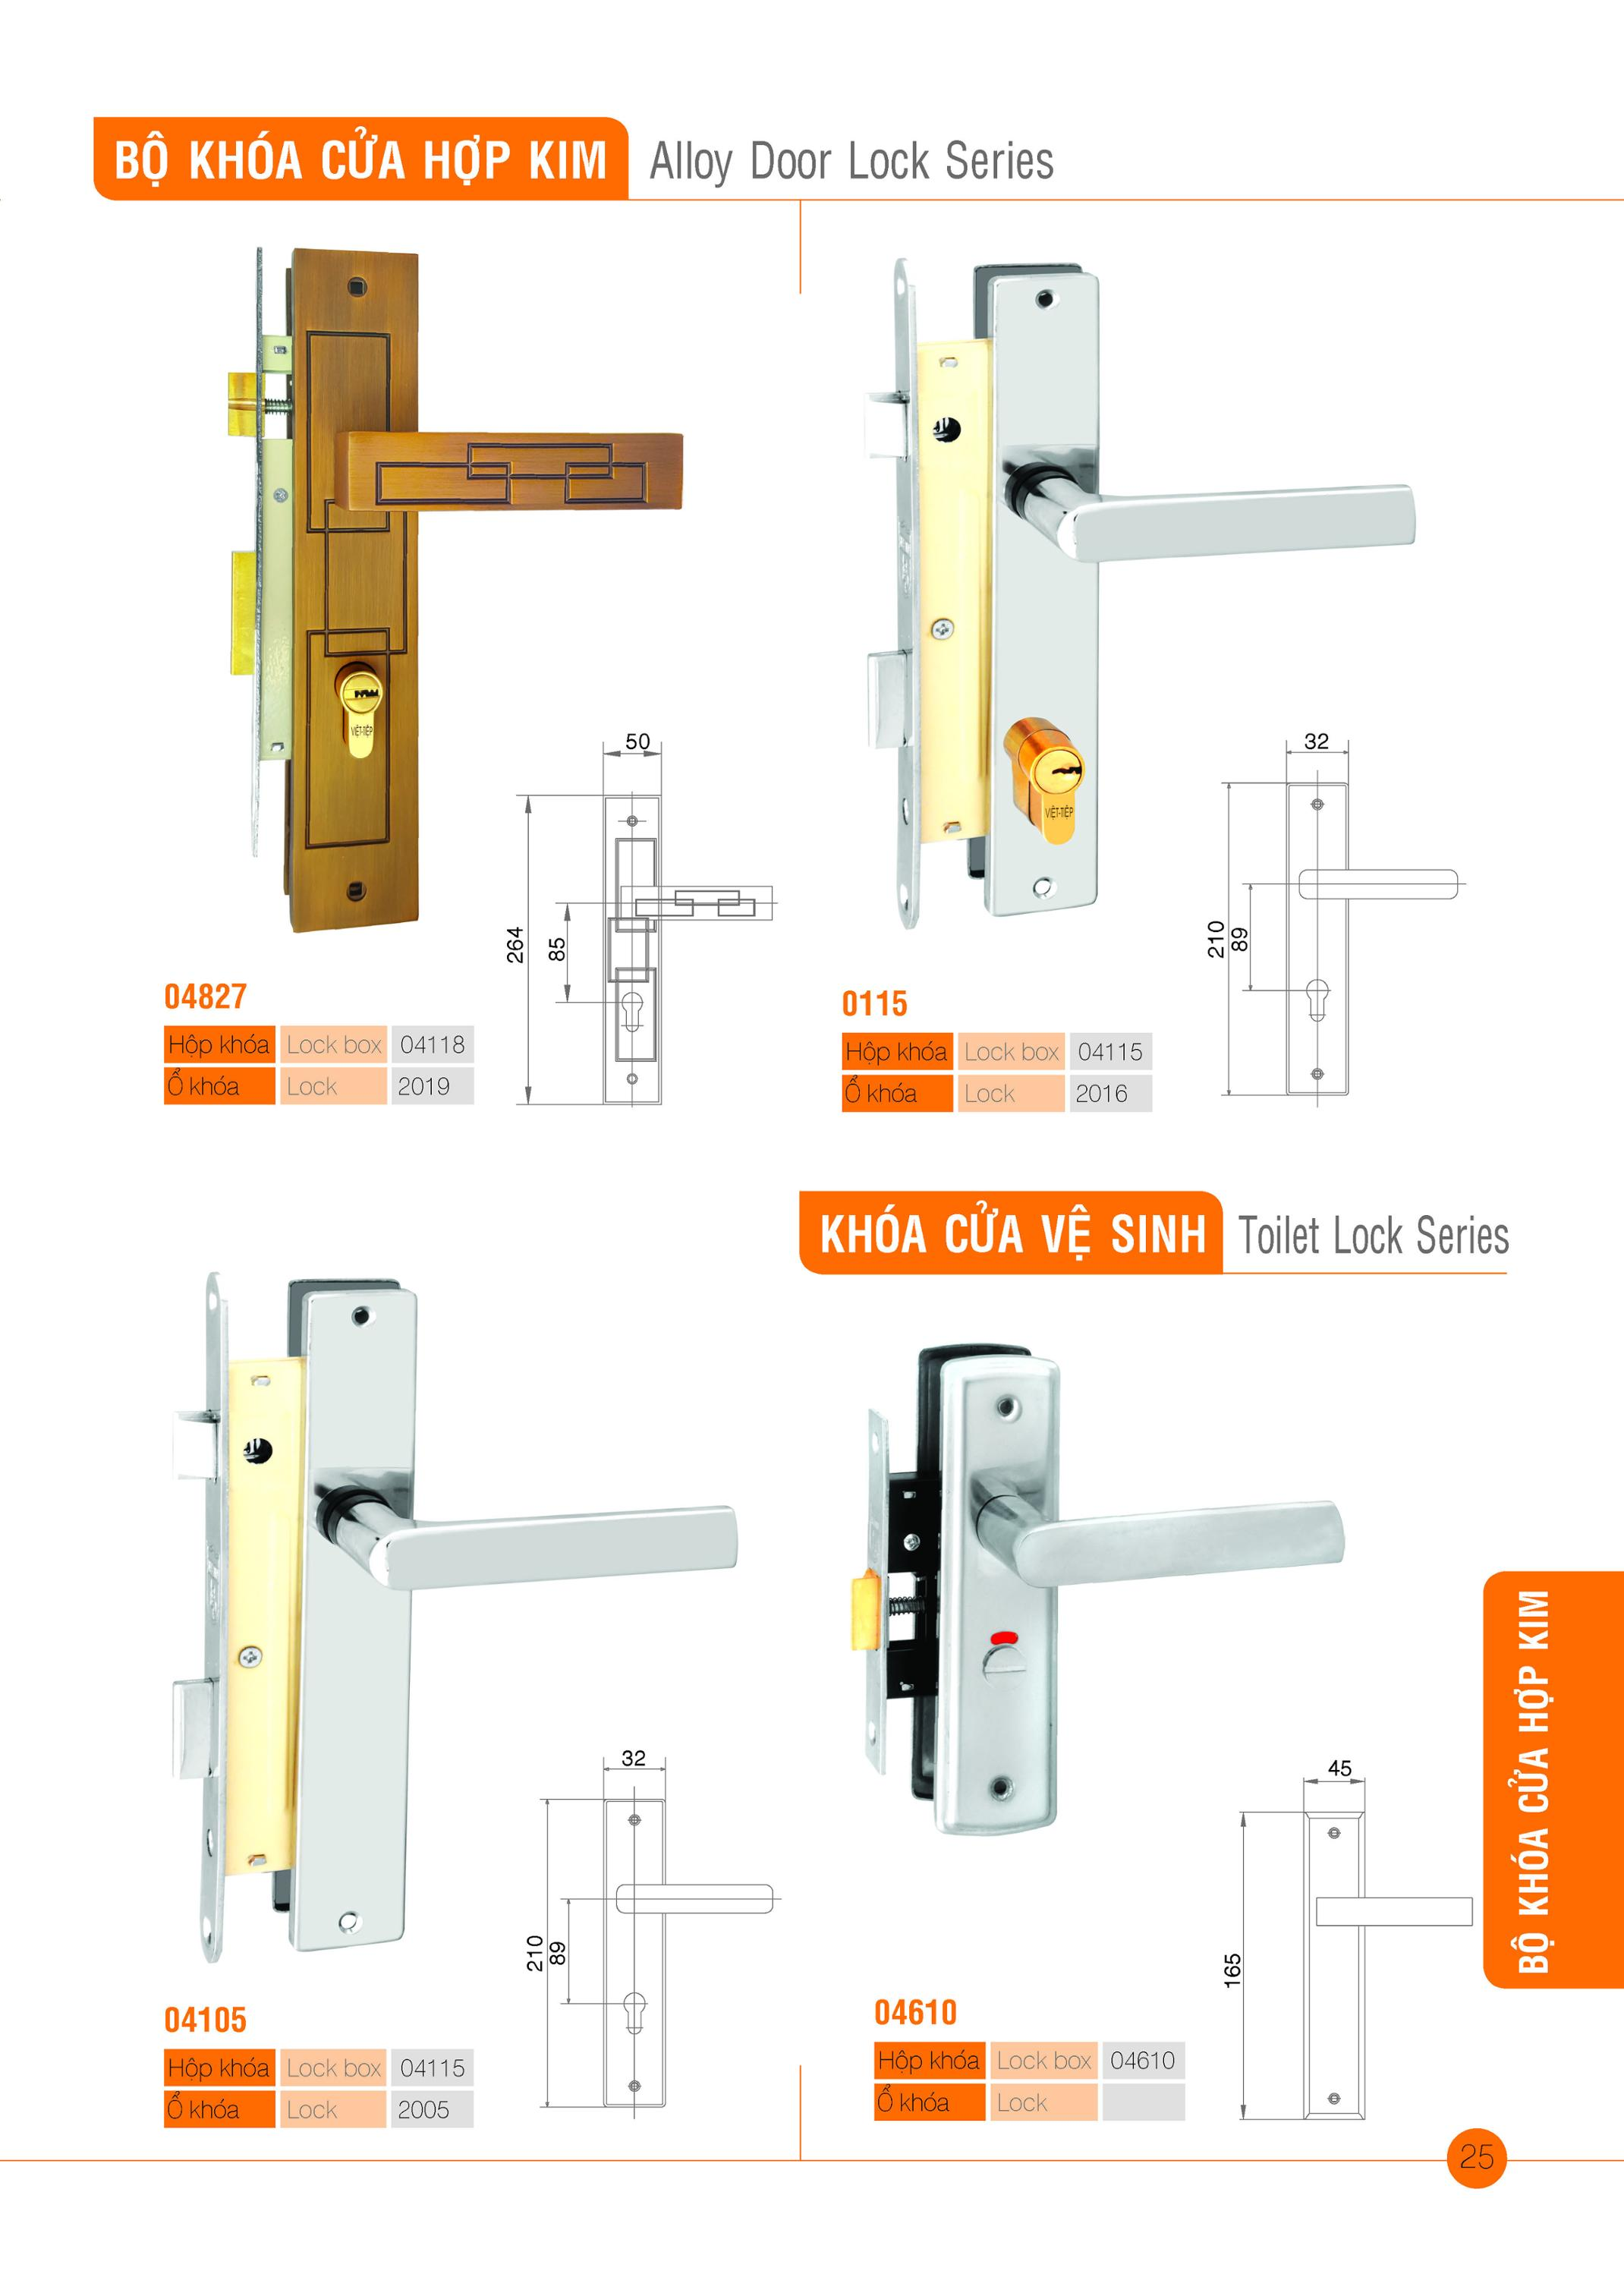 Alloy door lock series (Lock 2016)